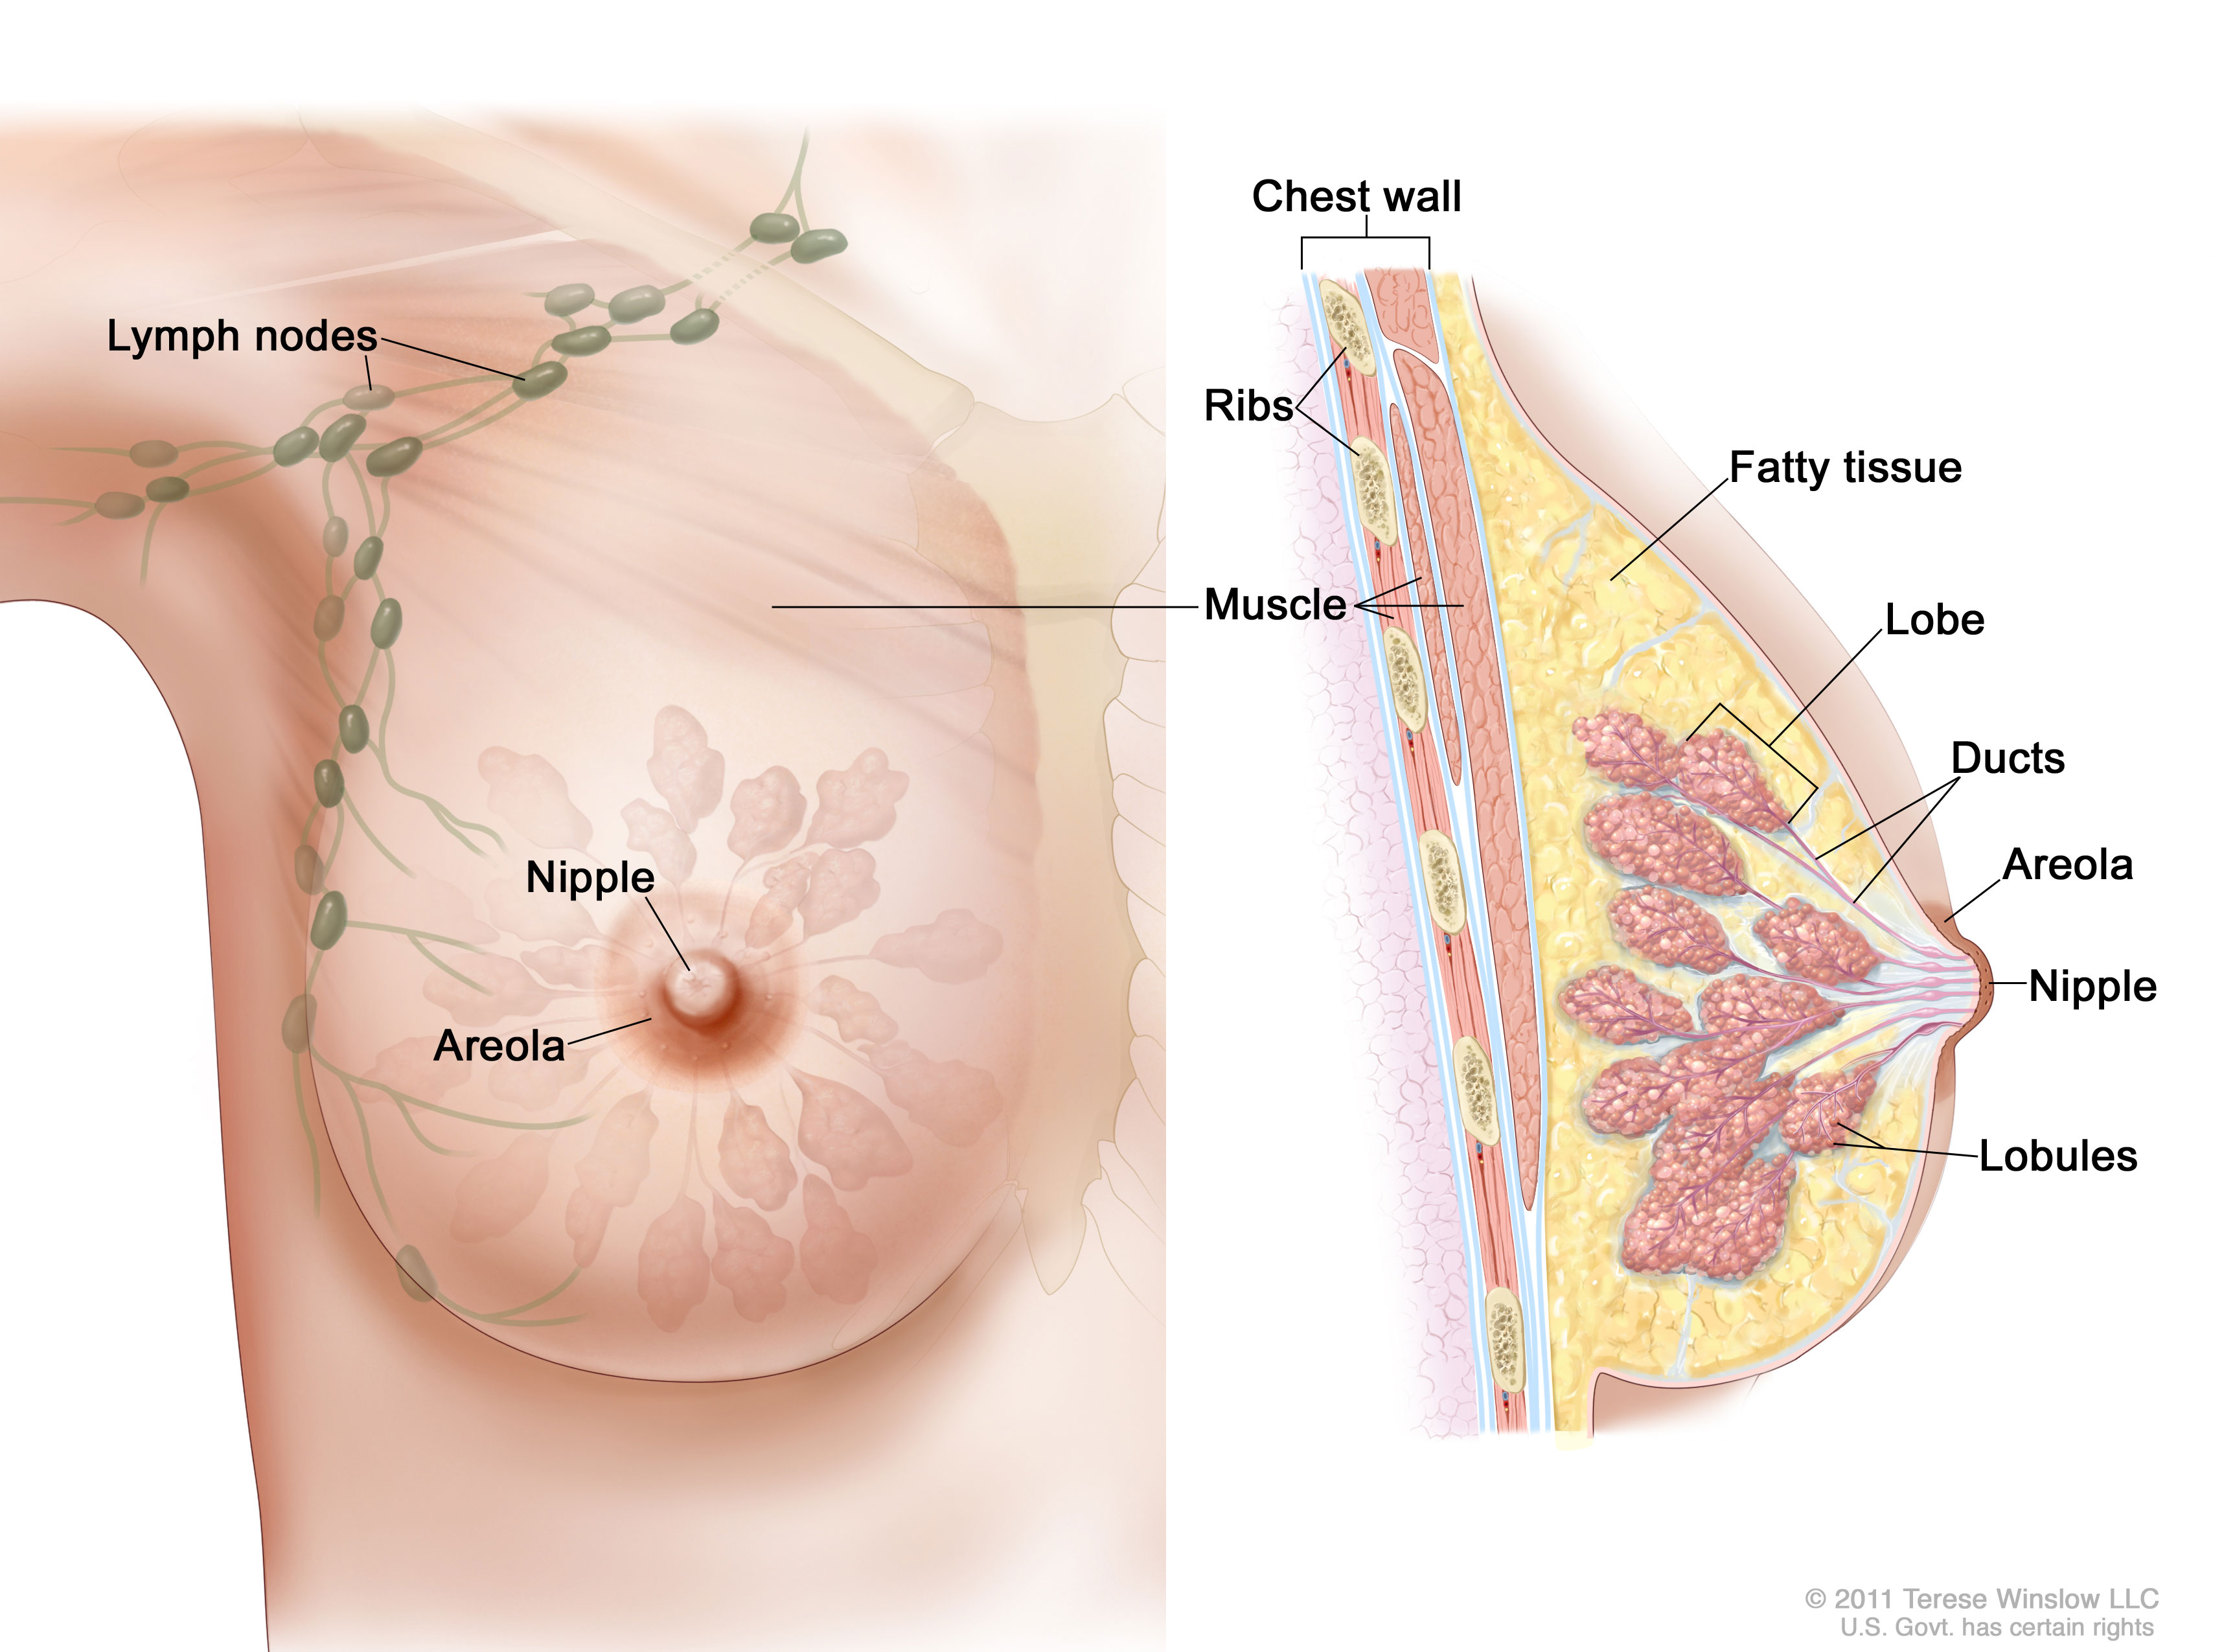 Breast Images of the breast are shown